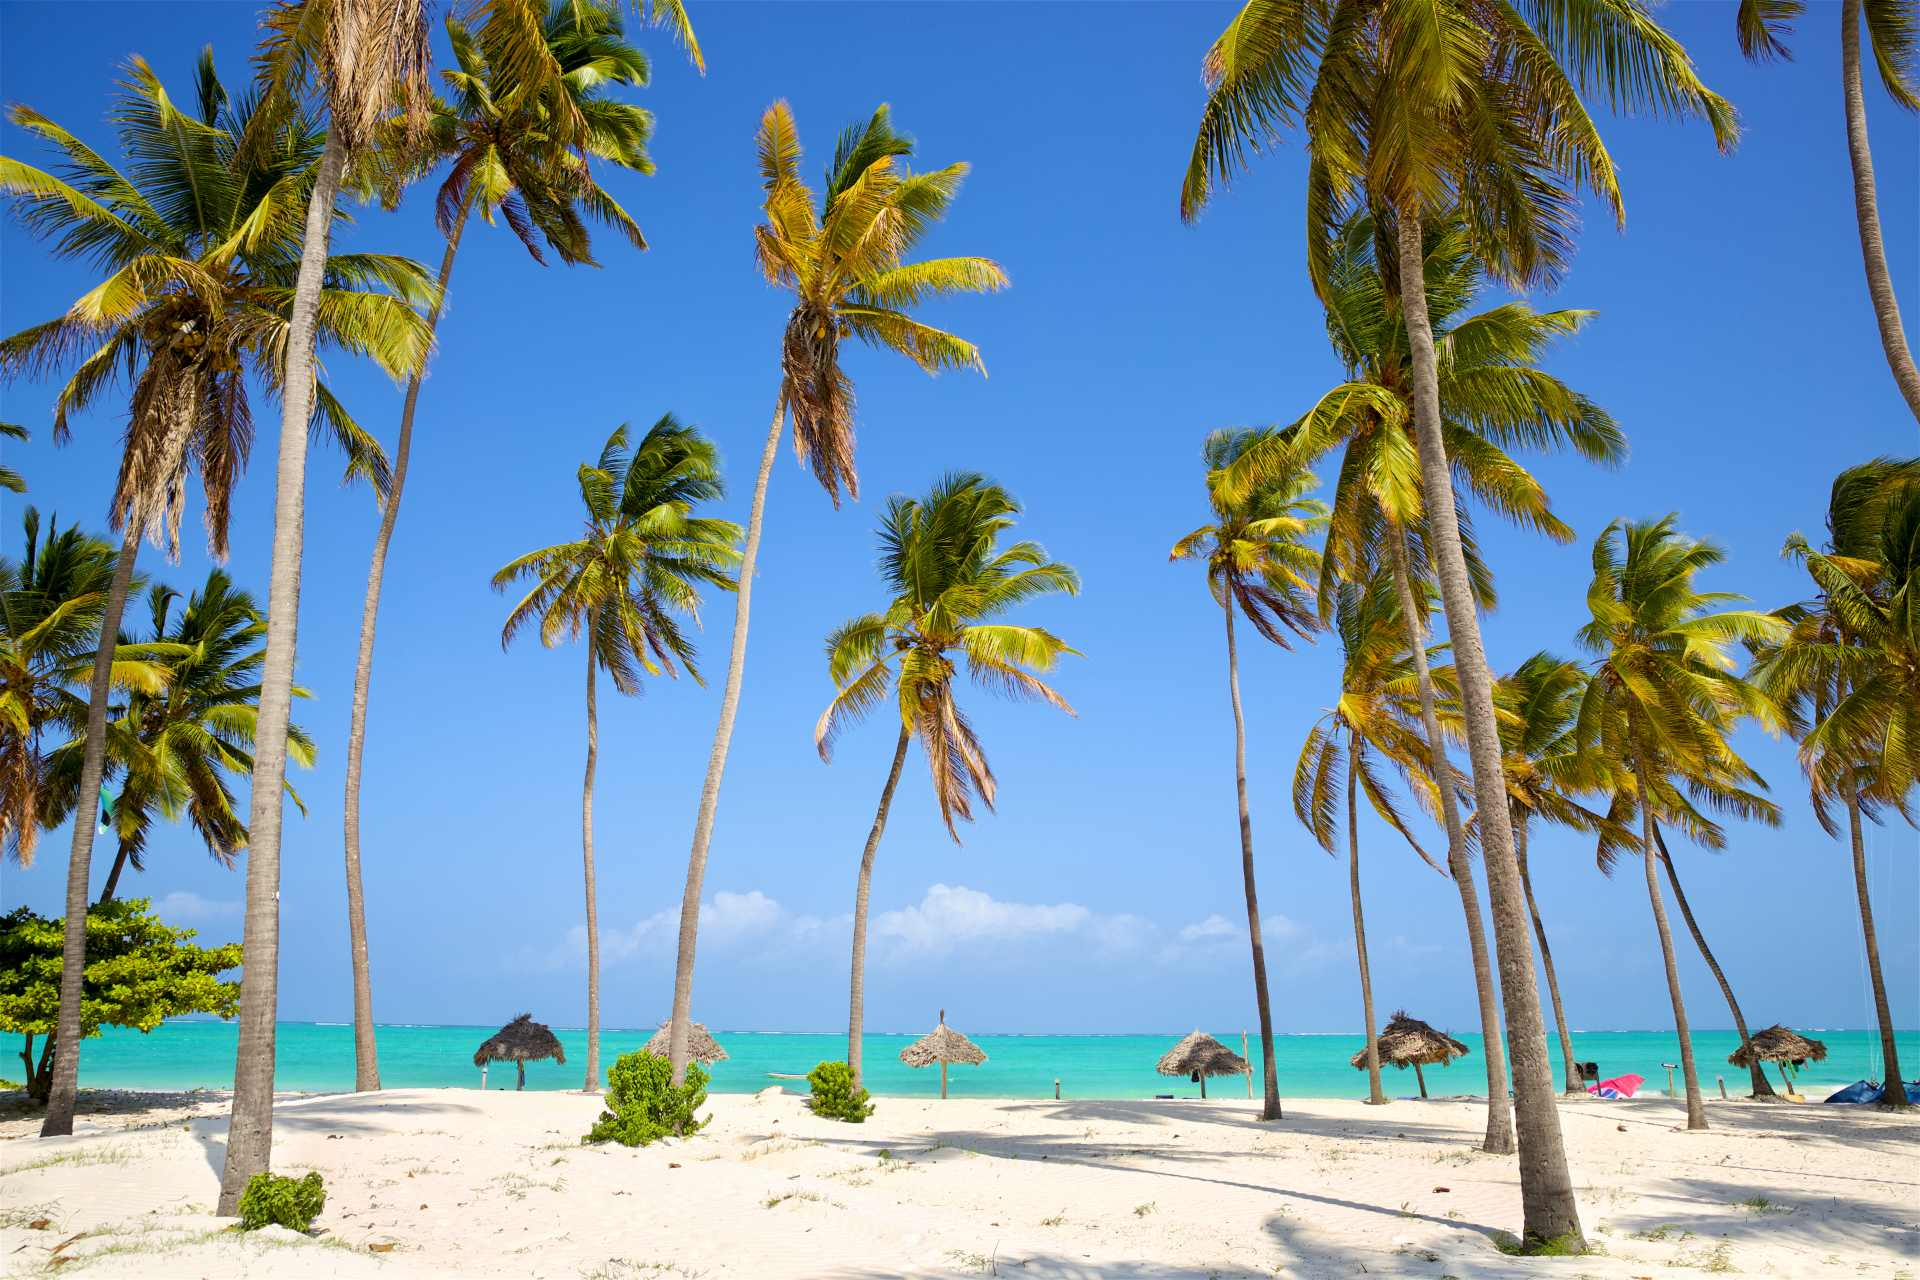 paje-white-sand-beach-with-palm-trees-on-sunny-summers-day-best-things-to-do-in-zanzibar